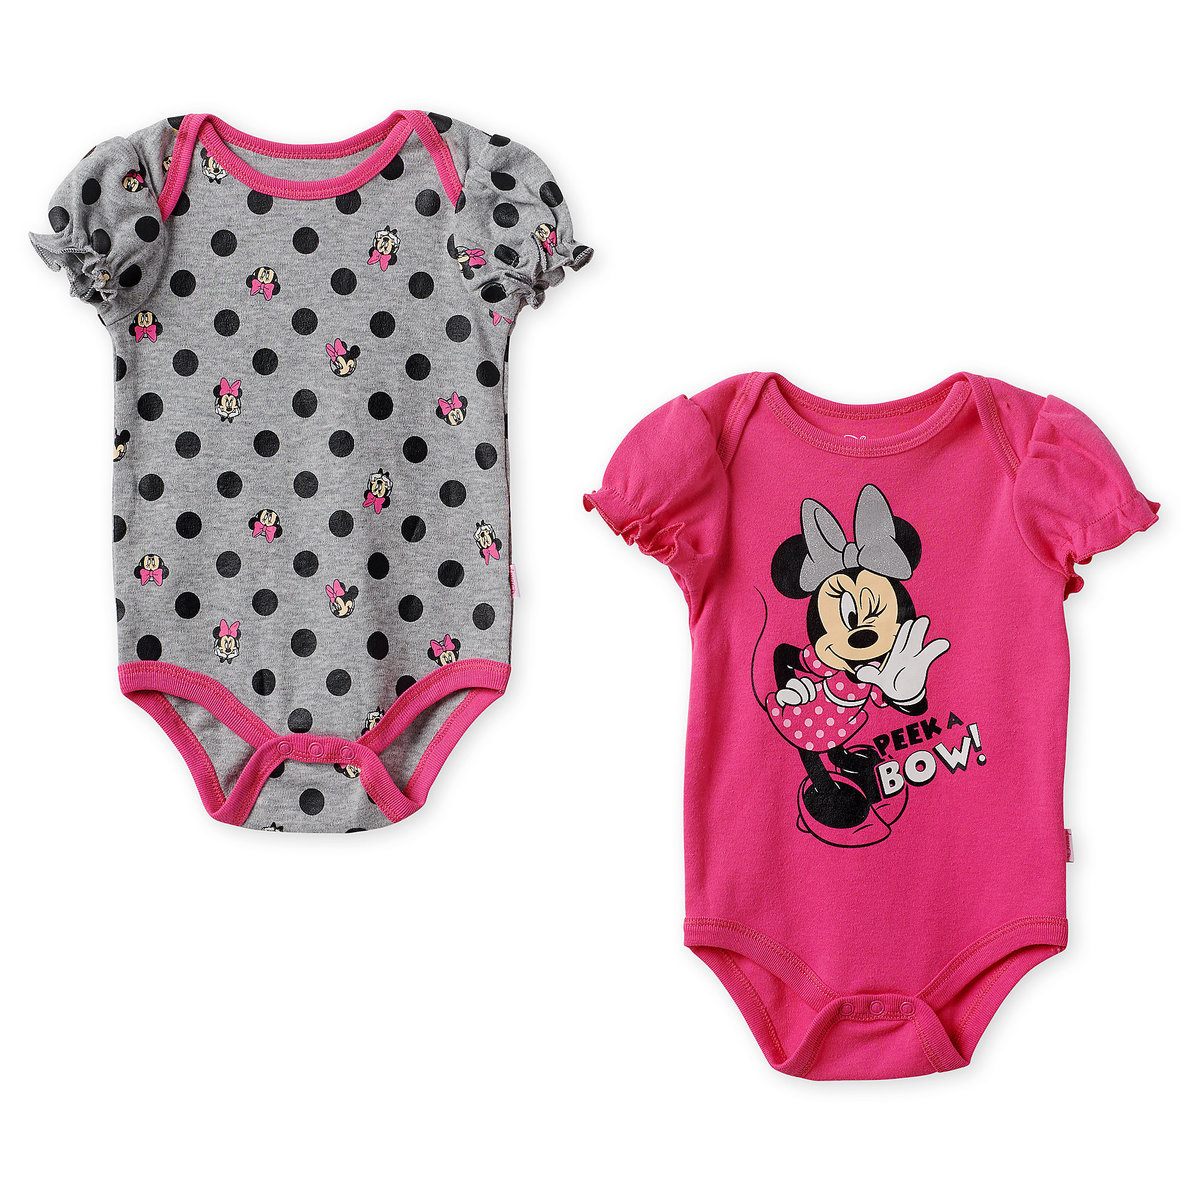 52941f82 Product Image of Minnie Mouse Bodysuit Set for Baby - Pink # 1